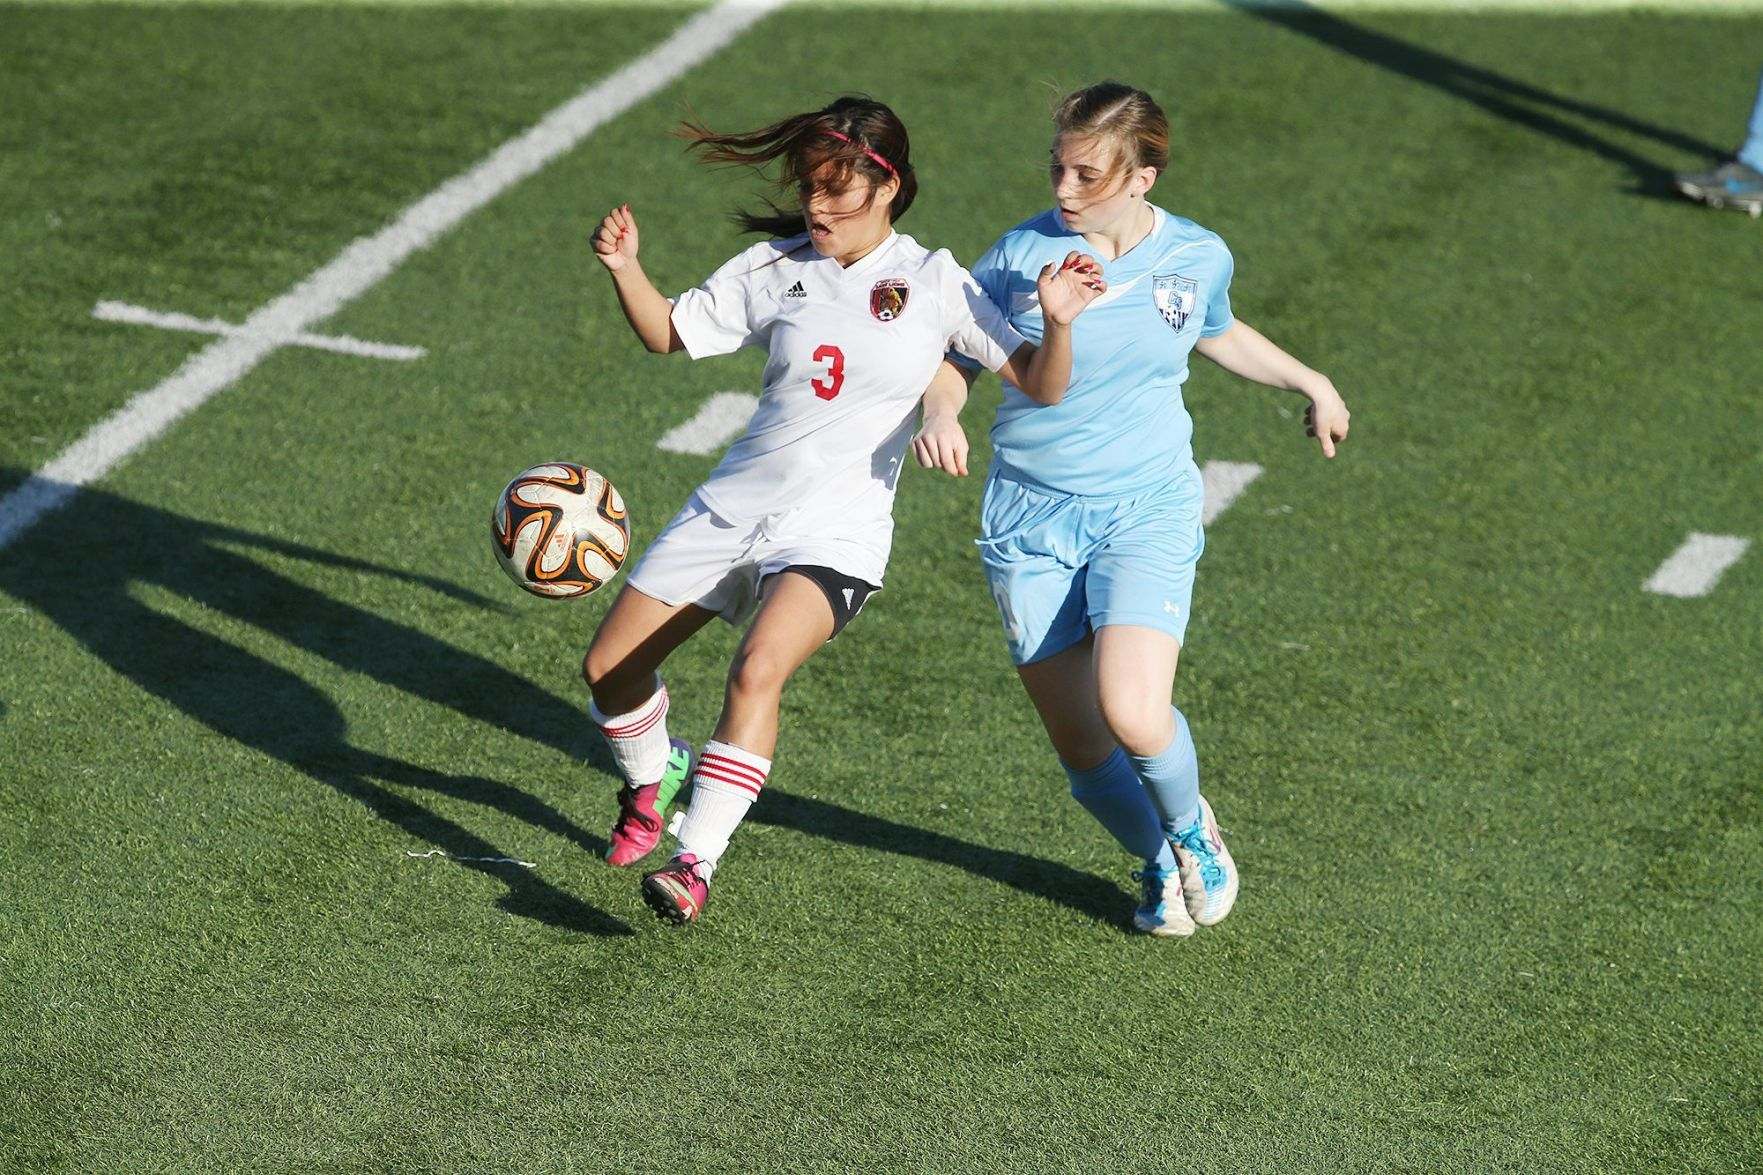 High School Notebook: Soccer Season Opens In Chilly With High School Sports Seasons Calendar